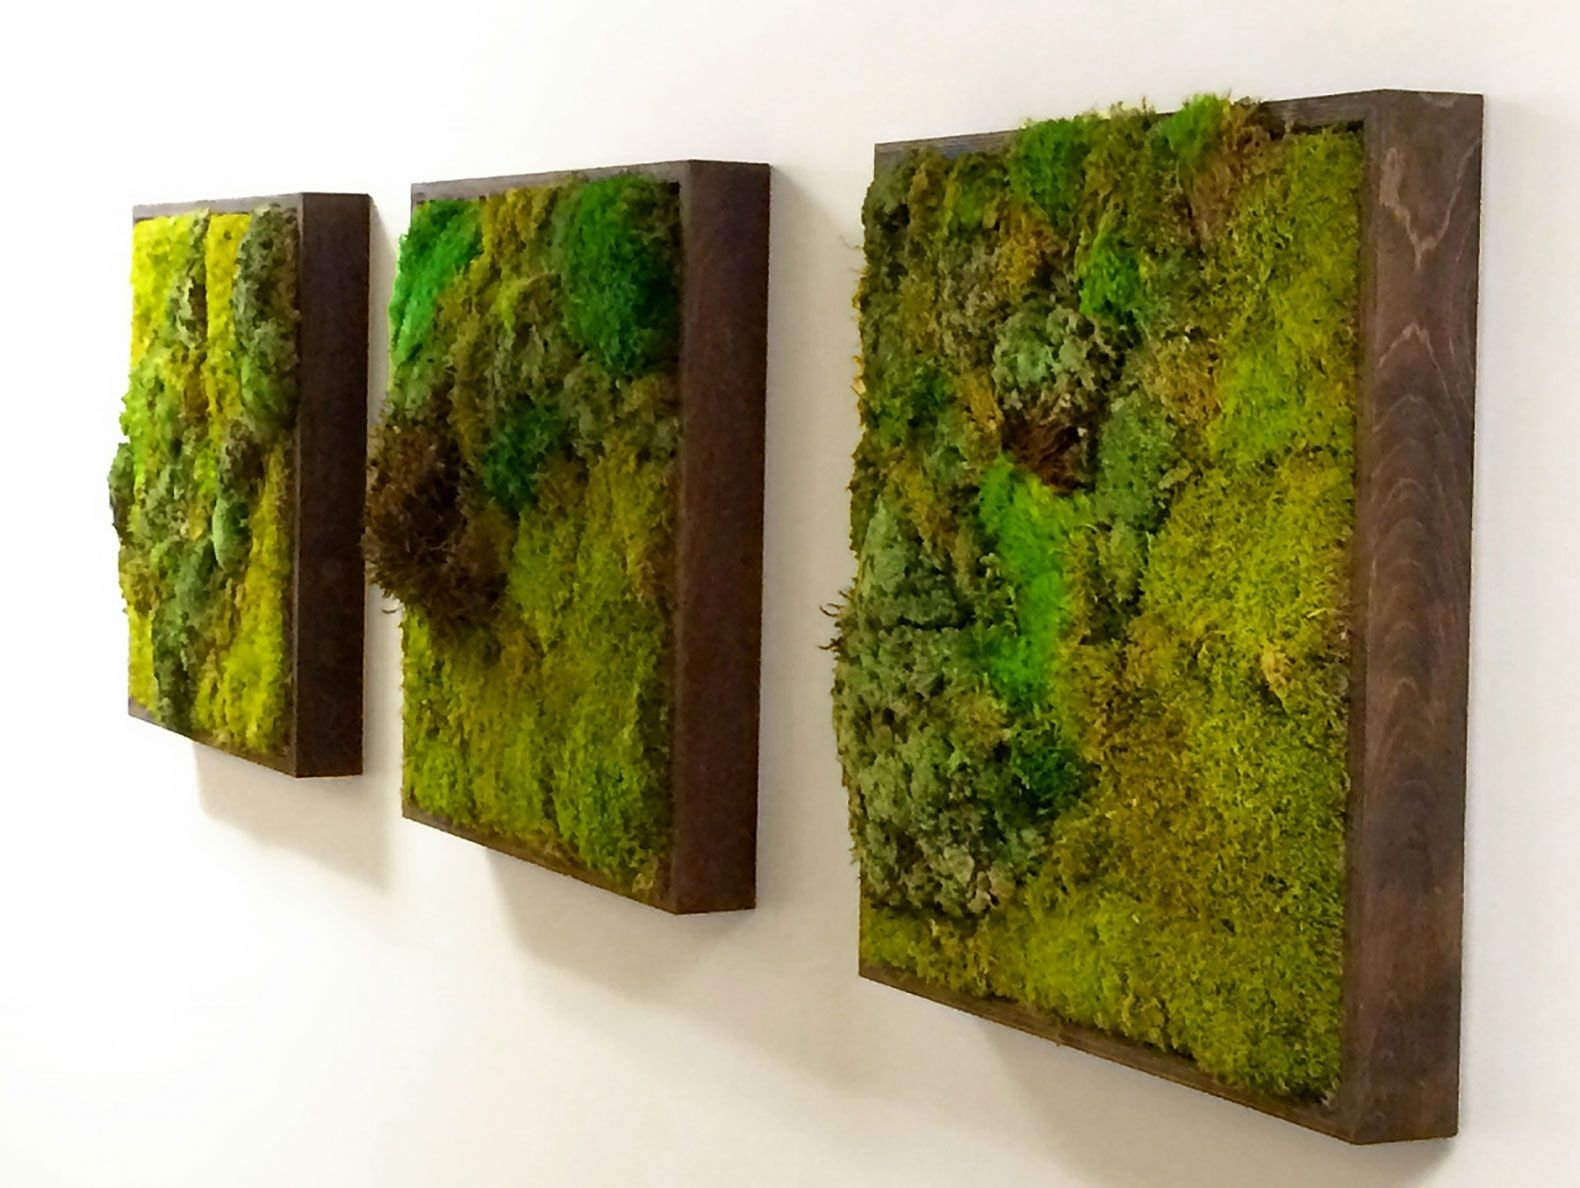 Moss Walls: The Newest Trend In Biophilic Interiors | Art 3 X For Best And Newest Moss Wall Art (View 15 of 20)